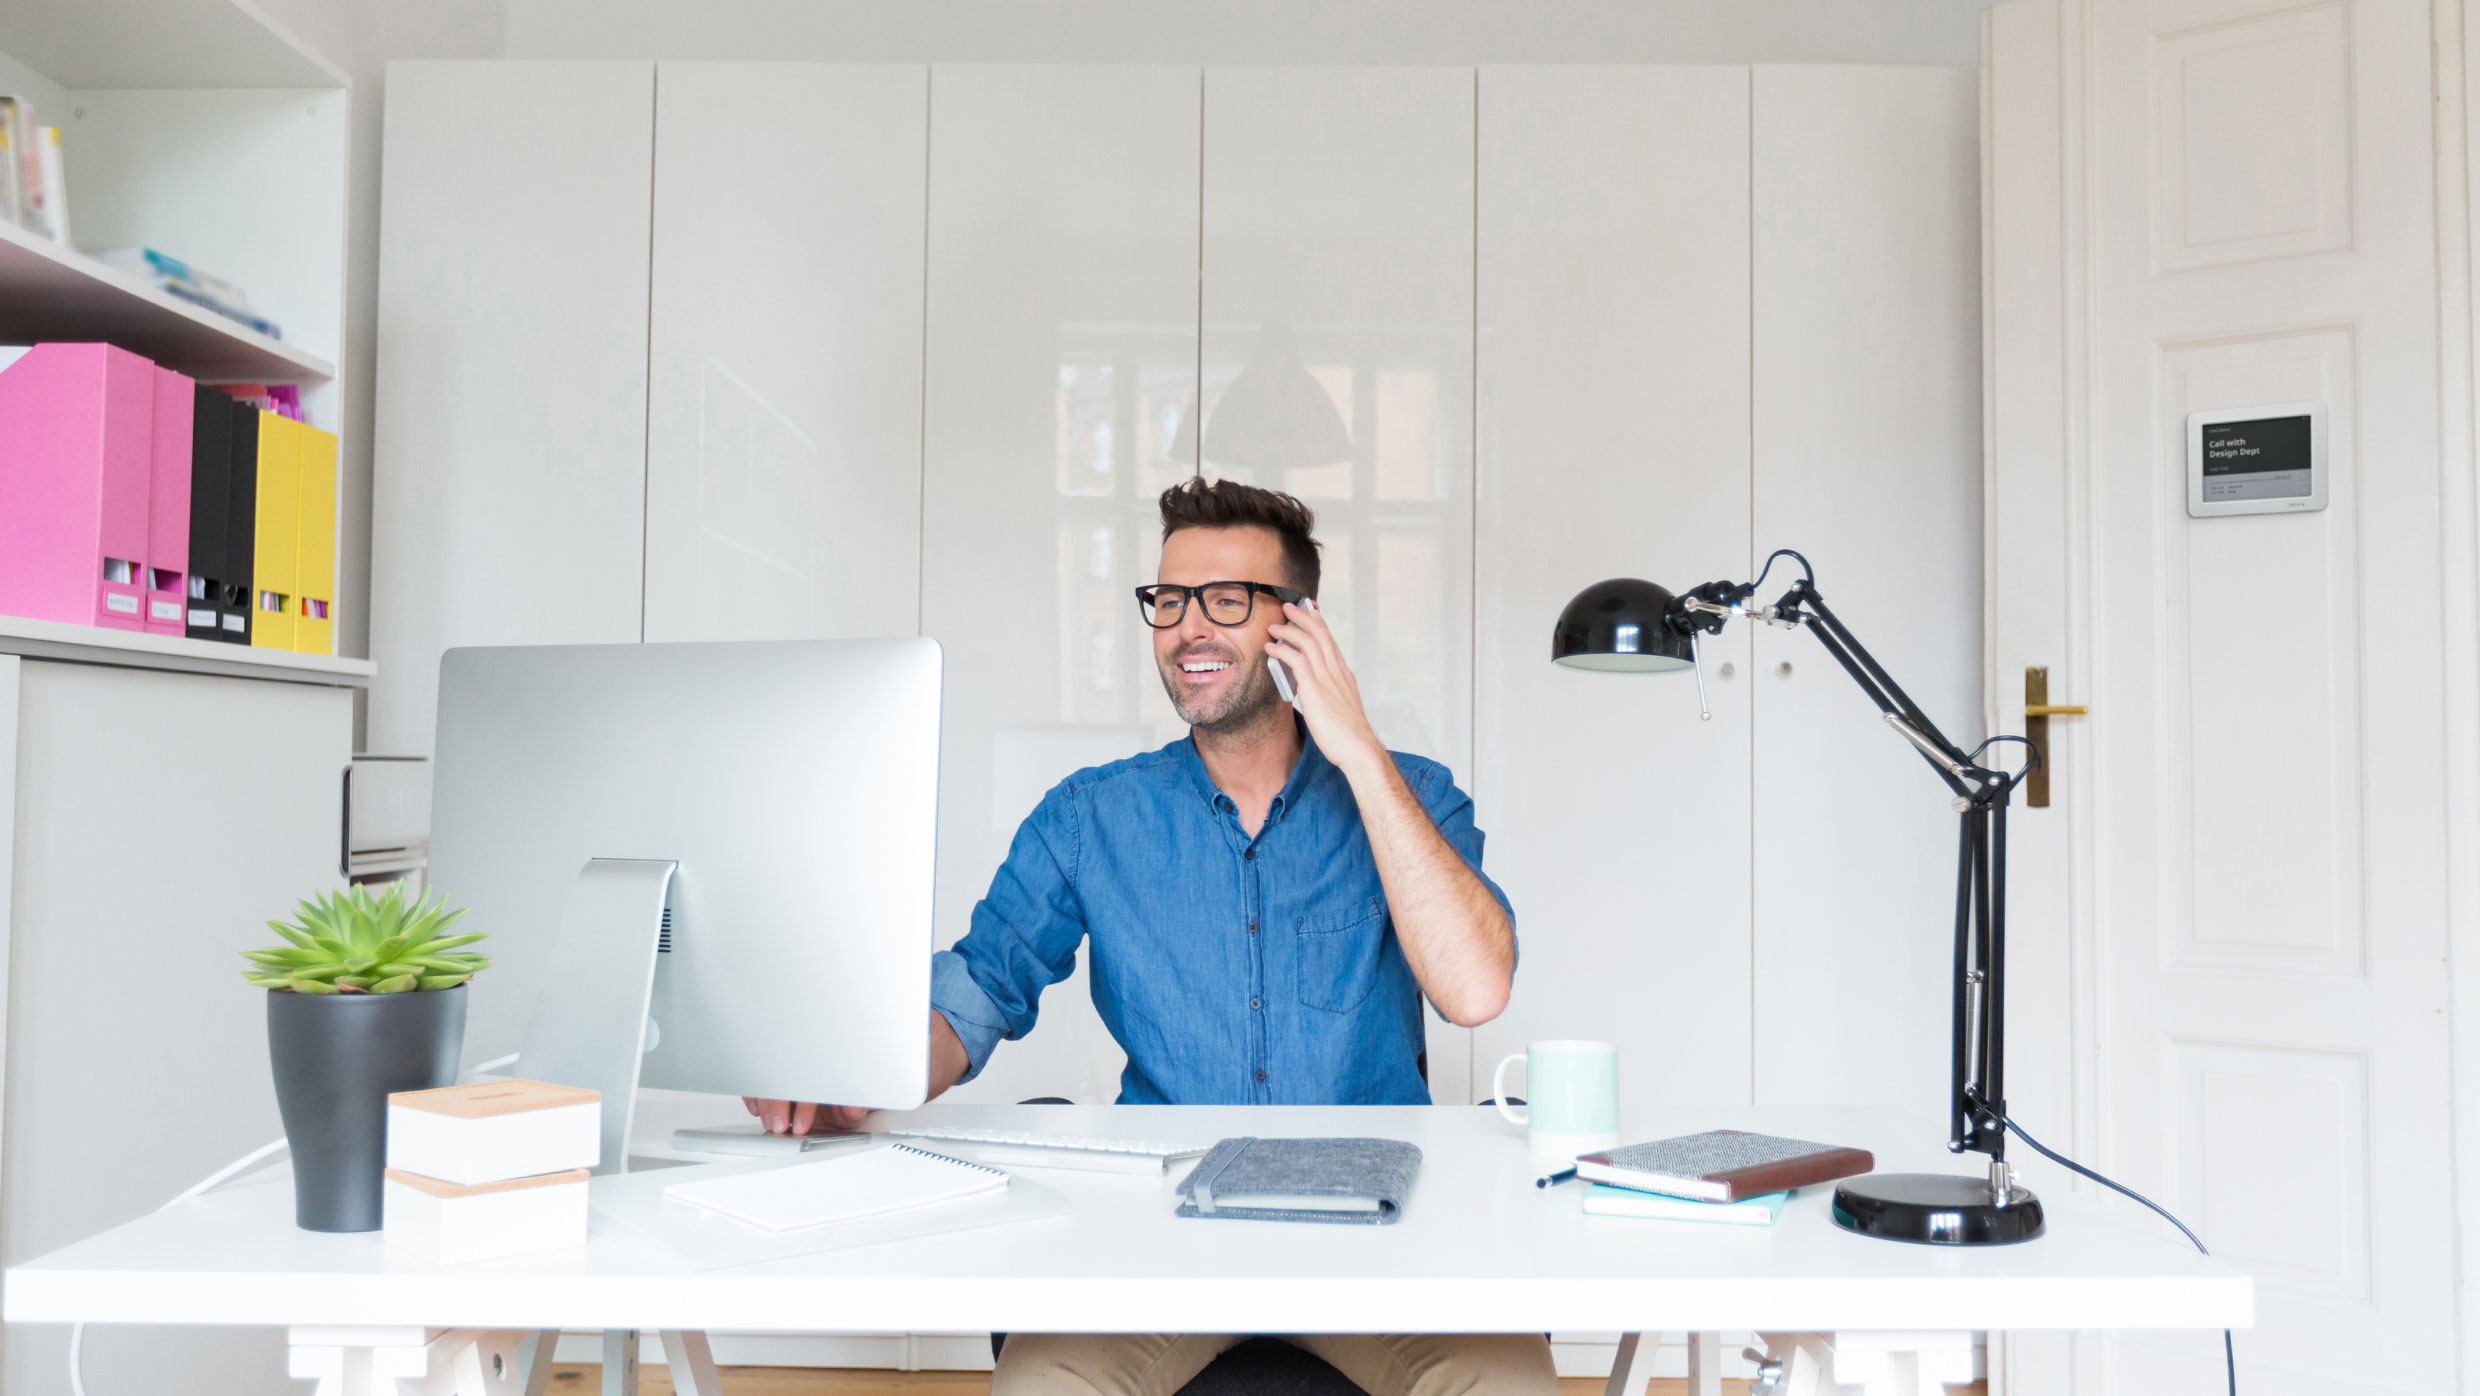 How to prepare your home office for a productive workday